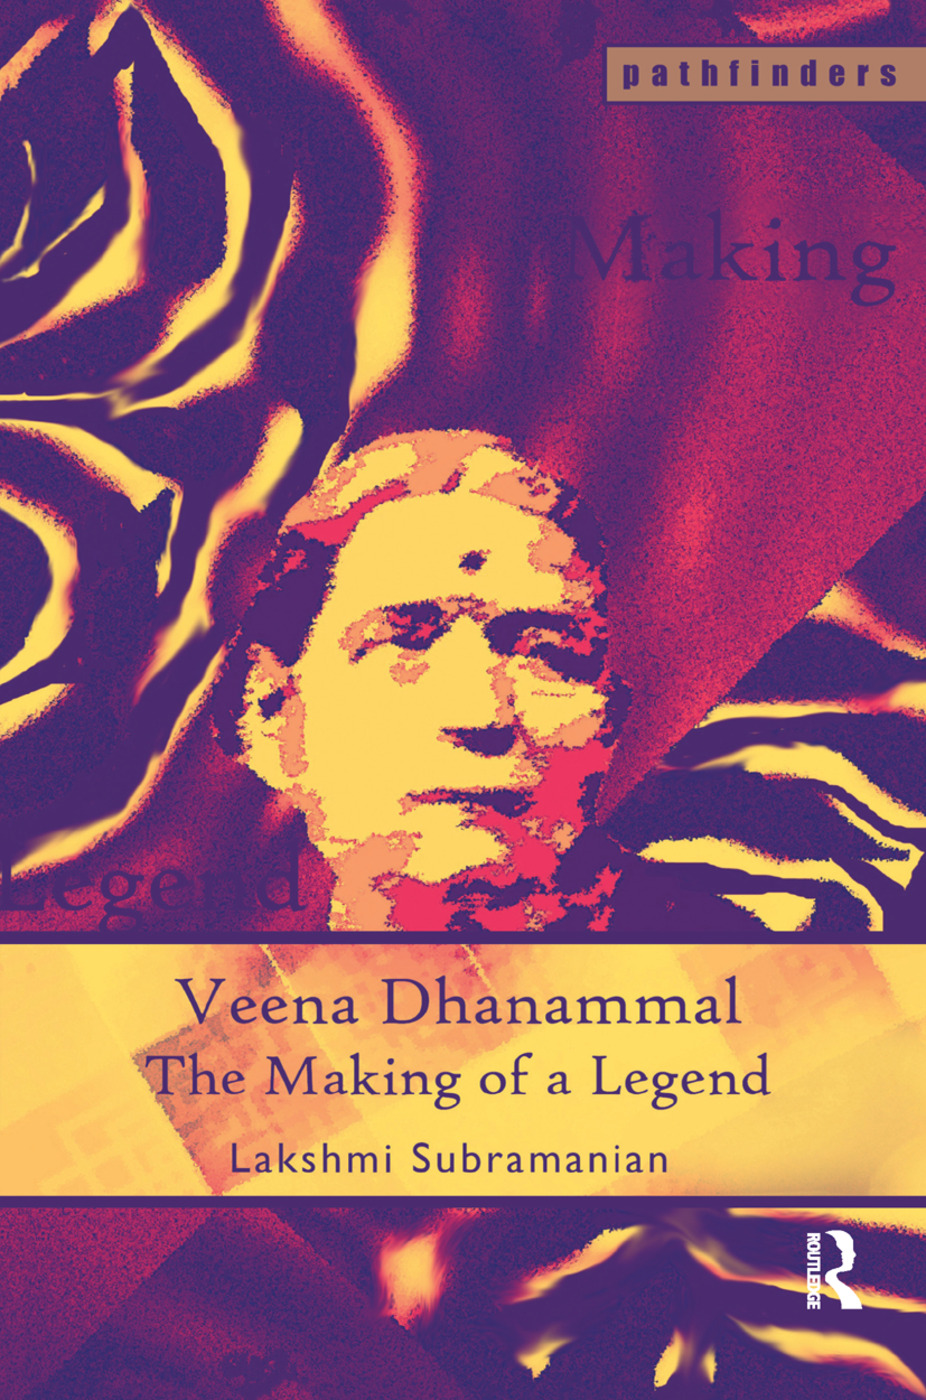 Veena Dhanammal: The Making of a Legend book cover